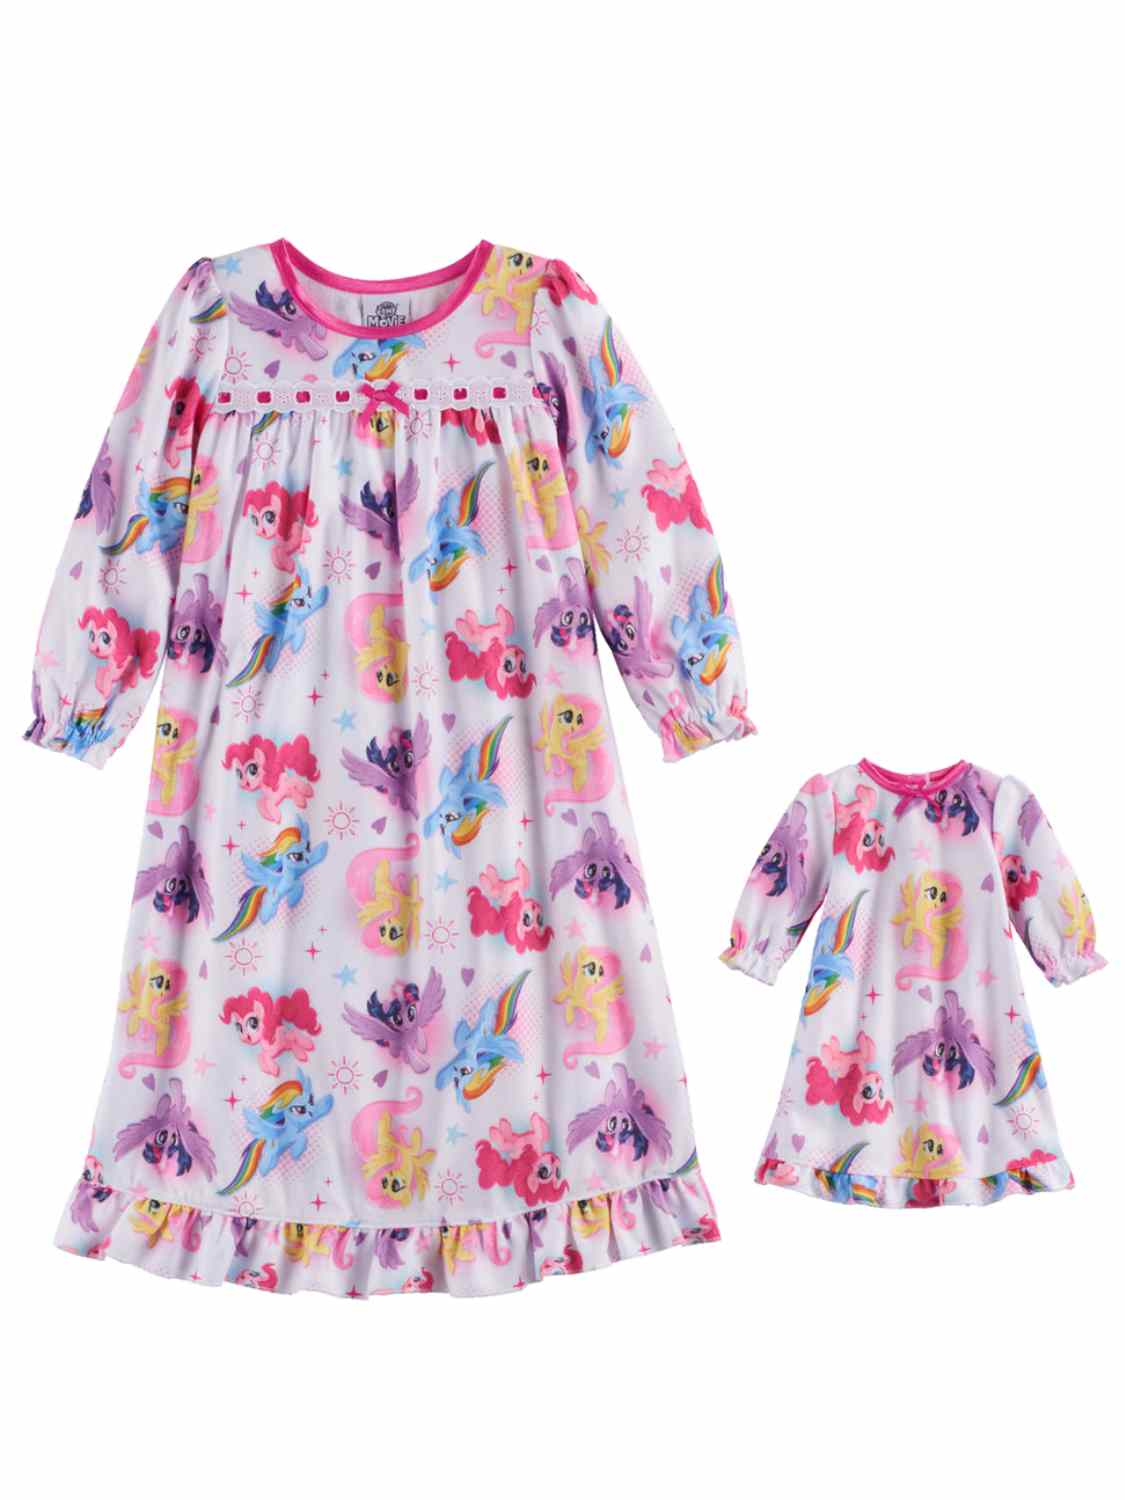 Toddler Girls White Flannel My Little Pony Nightgown & Doll Night Gown Set 2T